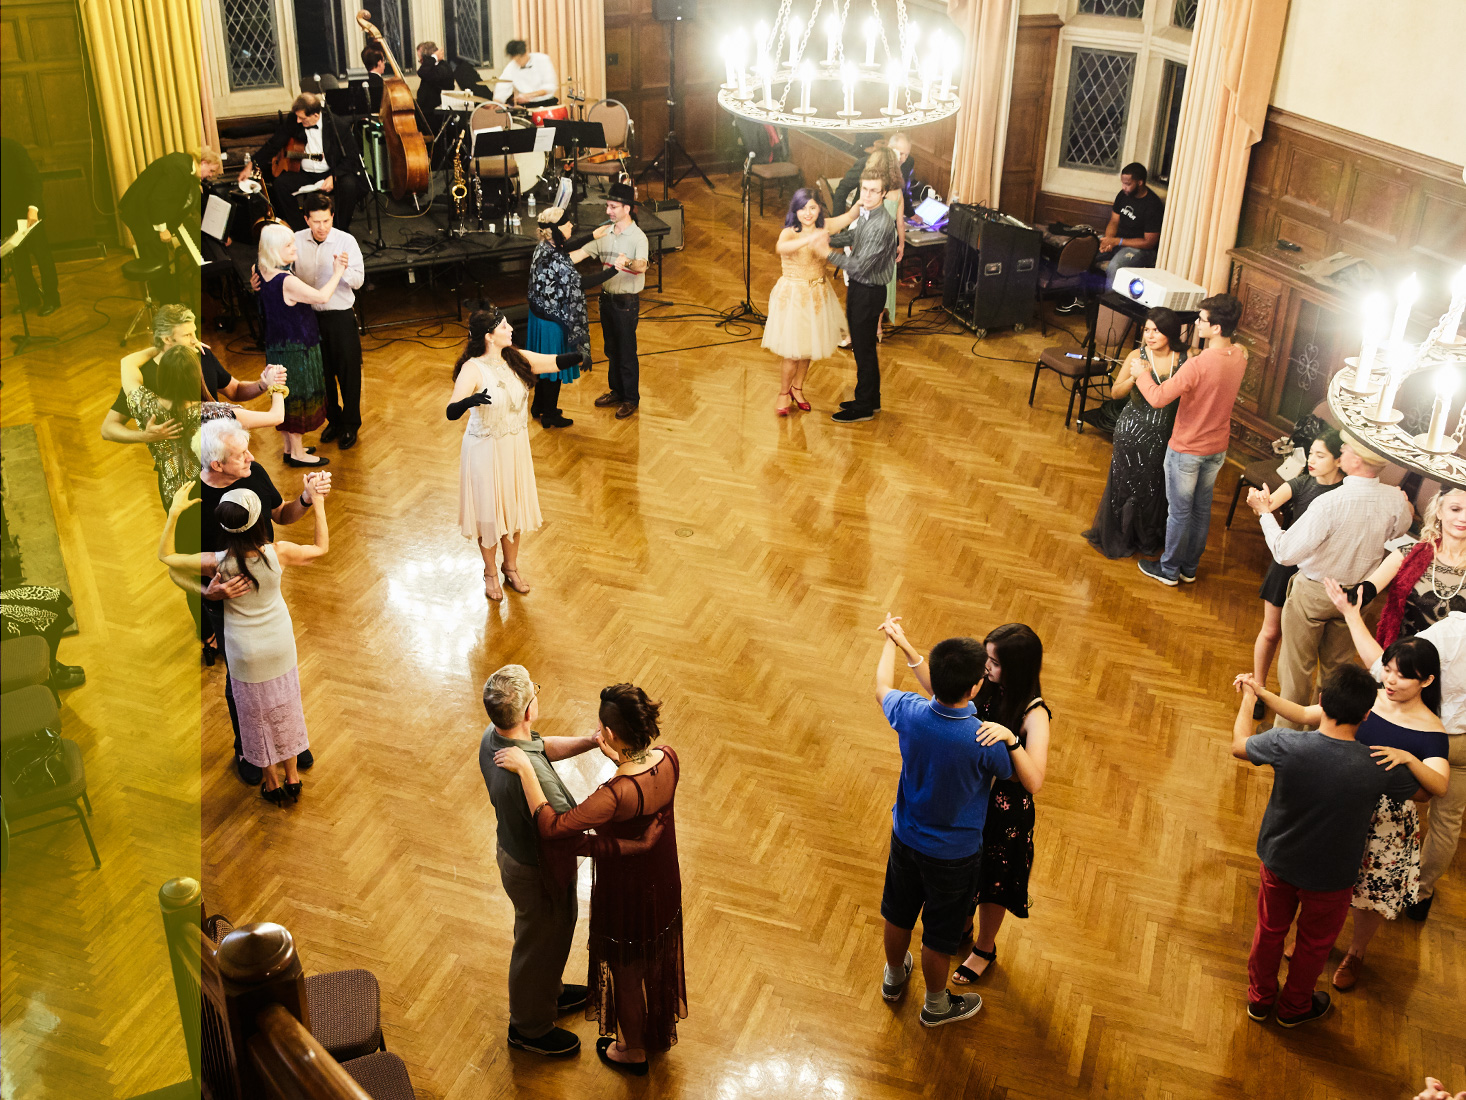 The Historical Ballroom Dance Club performs in a hall.